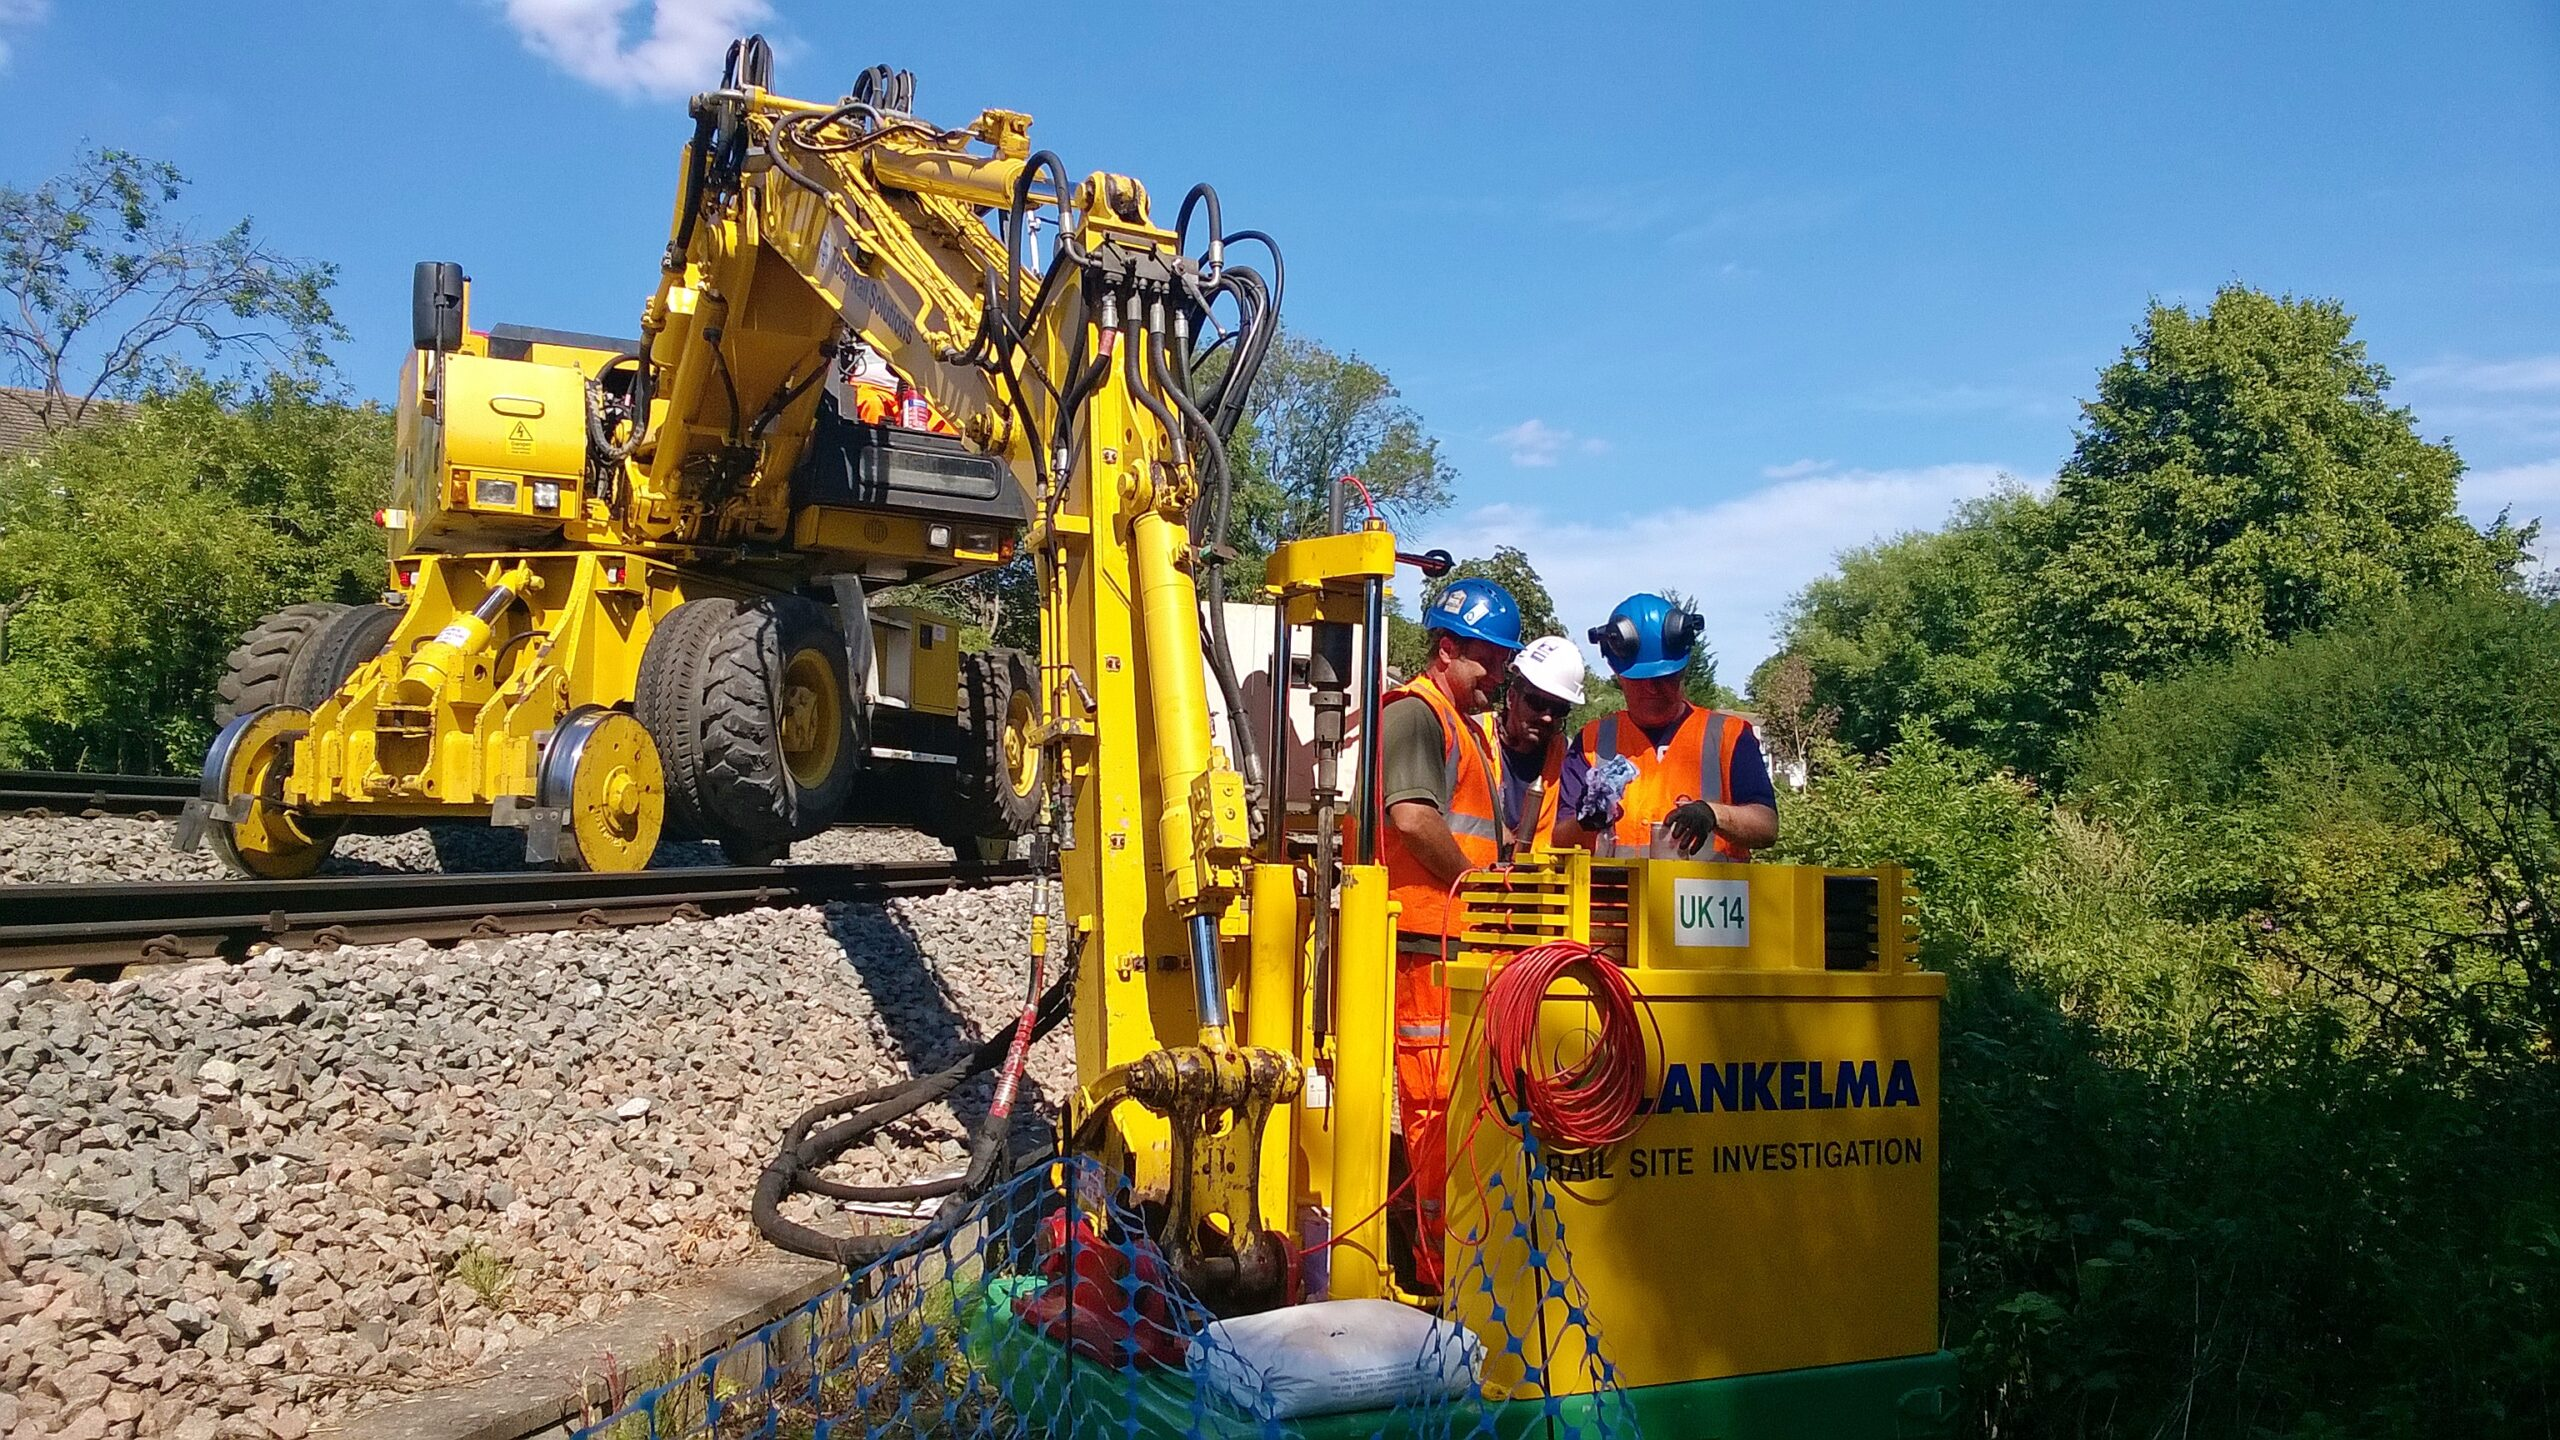 UK14 - excavator mounted rail unit